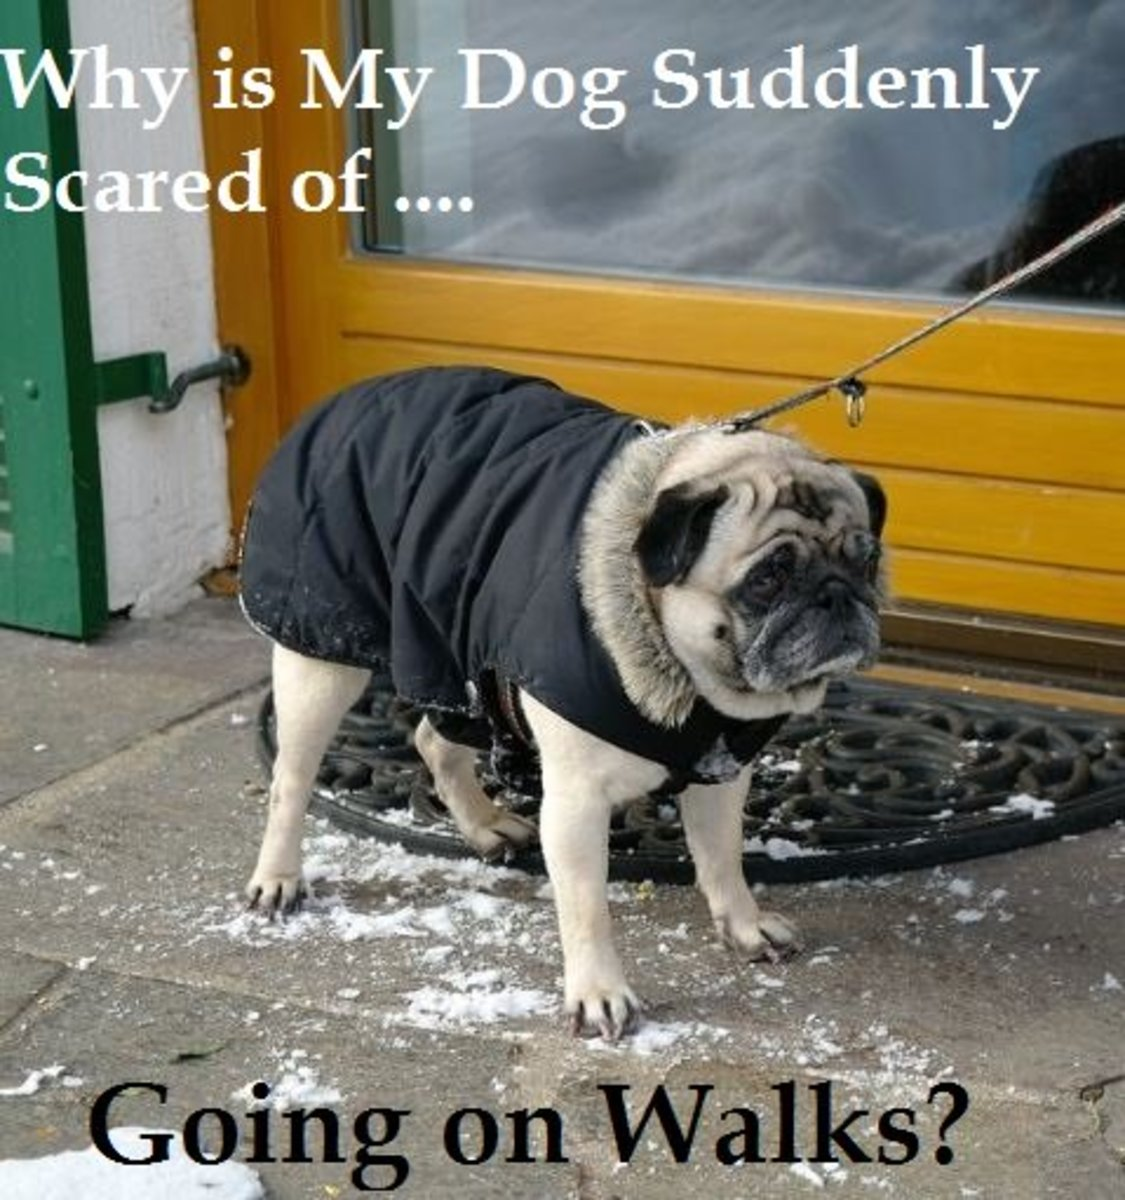 Many dog owners report their dogs are scared of going outside.